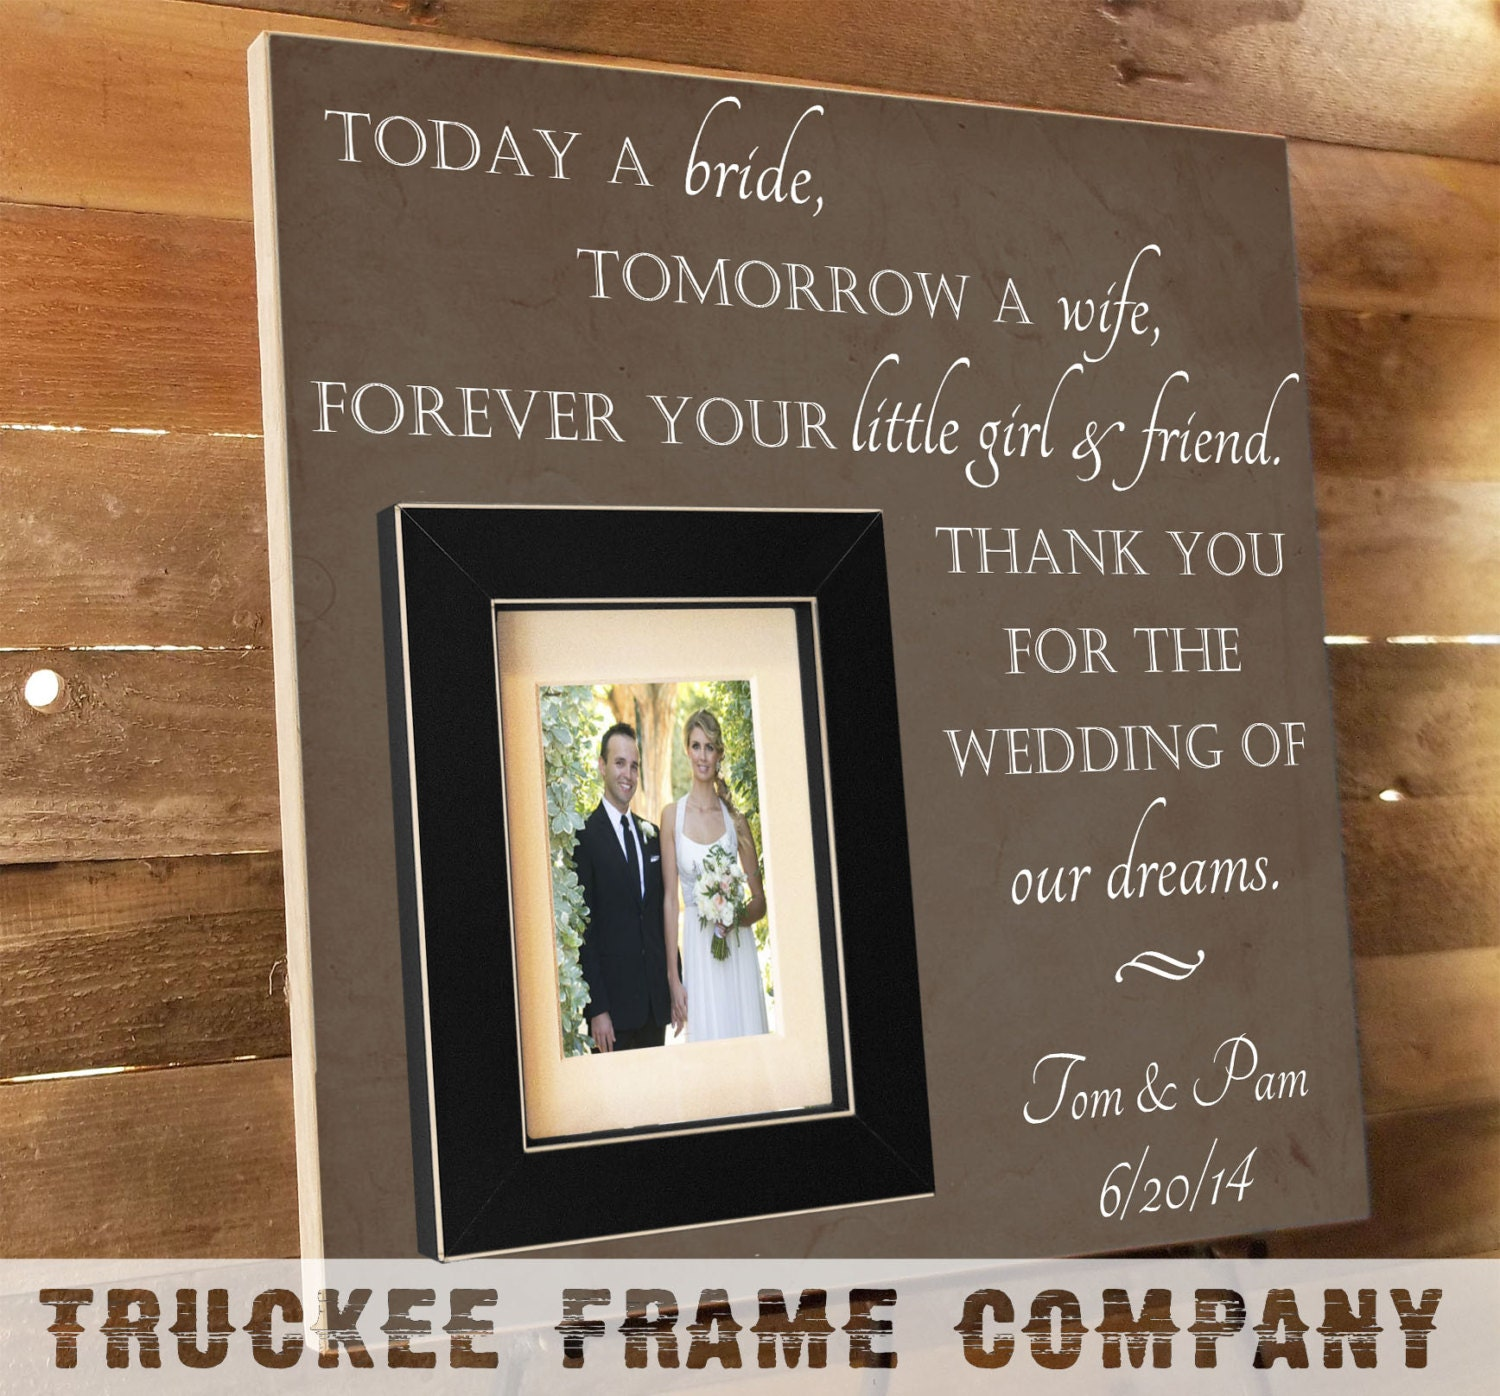 Thank You Present For Parents After Wedding : Thank You Parents Wedding Gift Personalized by TruckeeFrameCo